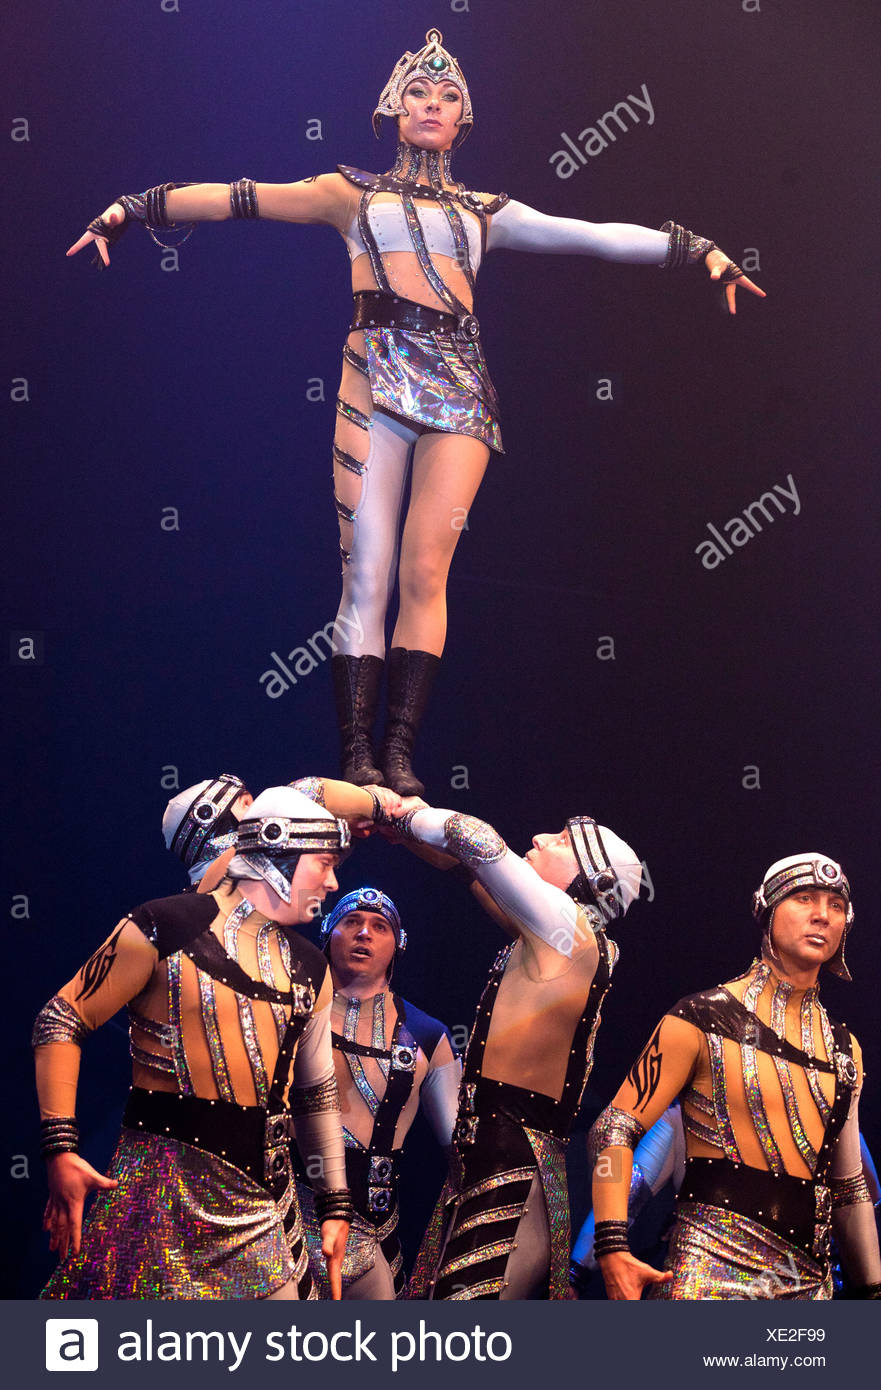 Dosov Troupe, FlicFlac Christmas Circus, premiere of Schrille Nacht, eilige Nacht, Westfalia Hall, Dortmund Stock Photo